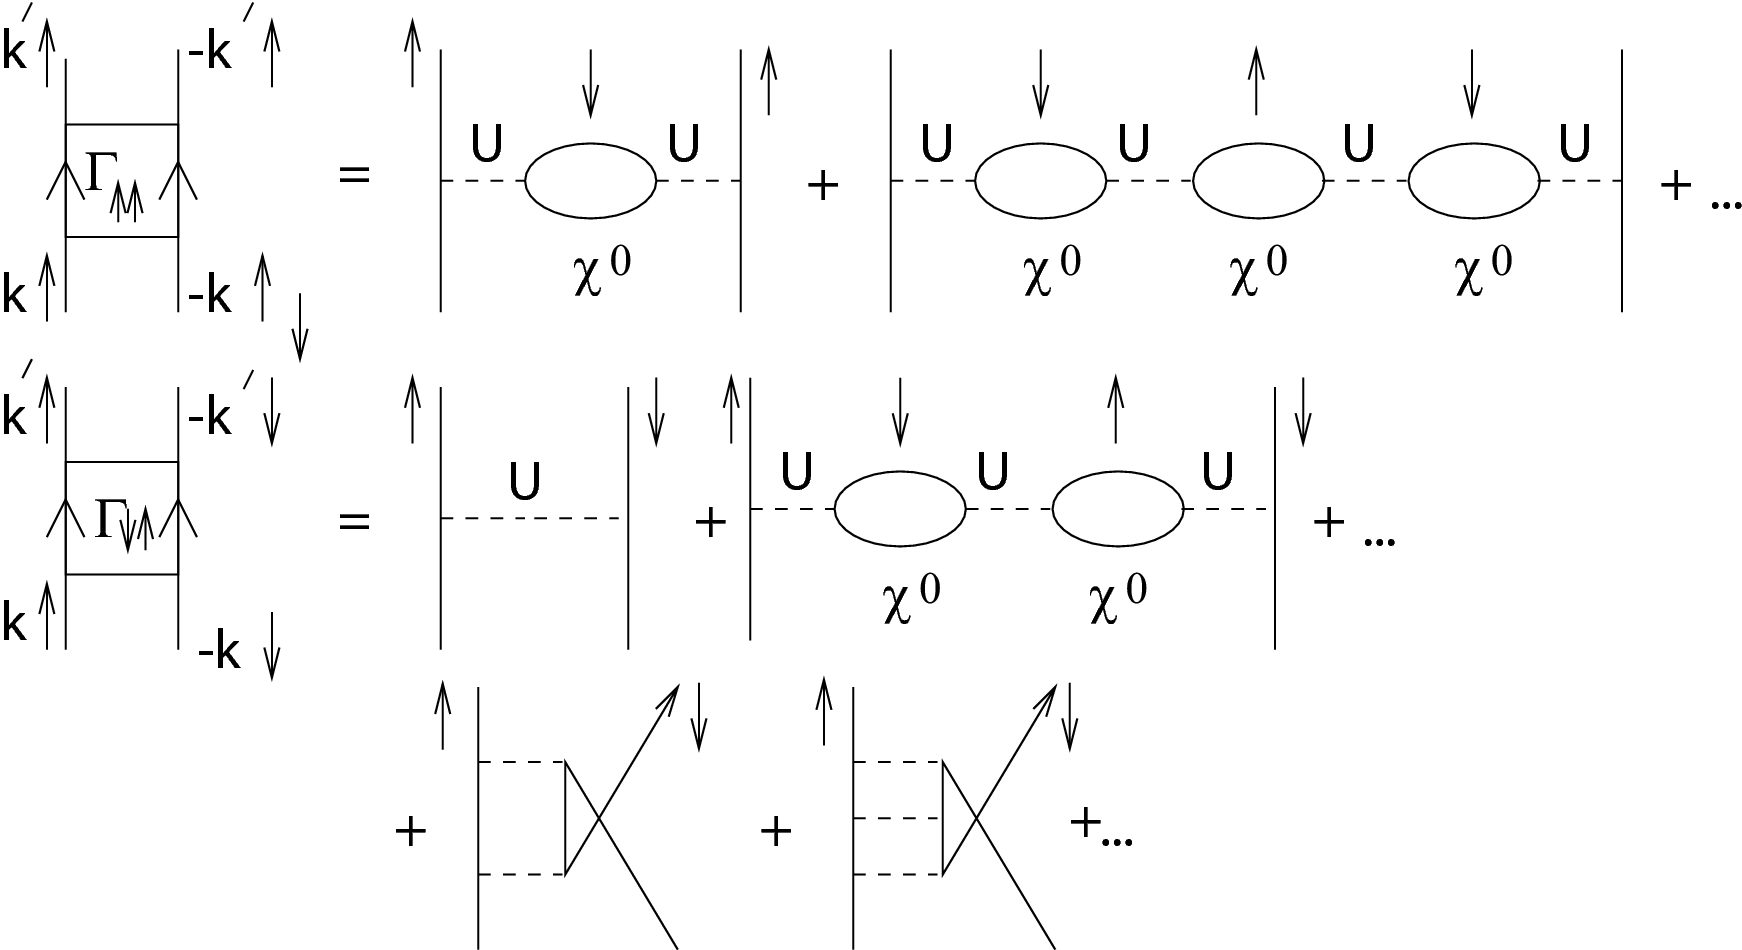 Effective pairing interaction between (a) equal spins and (b) opposite spins. Solid lines are electron